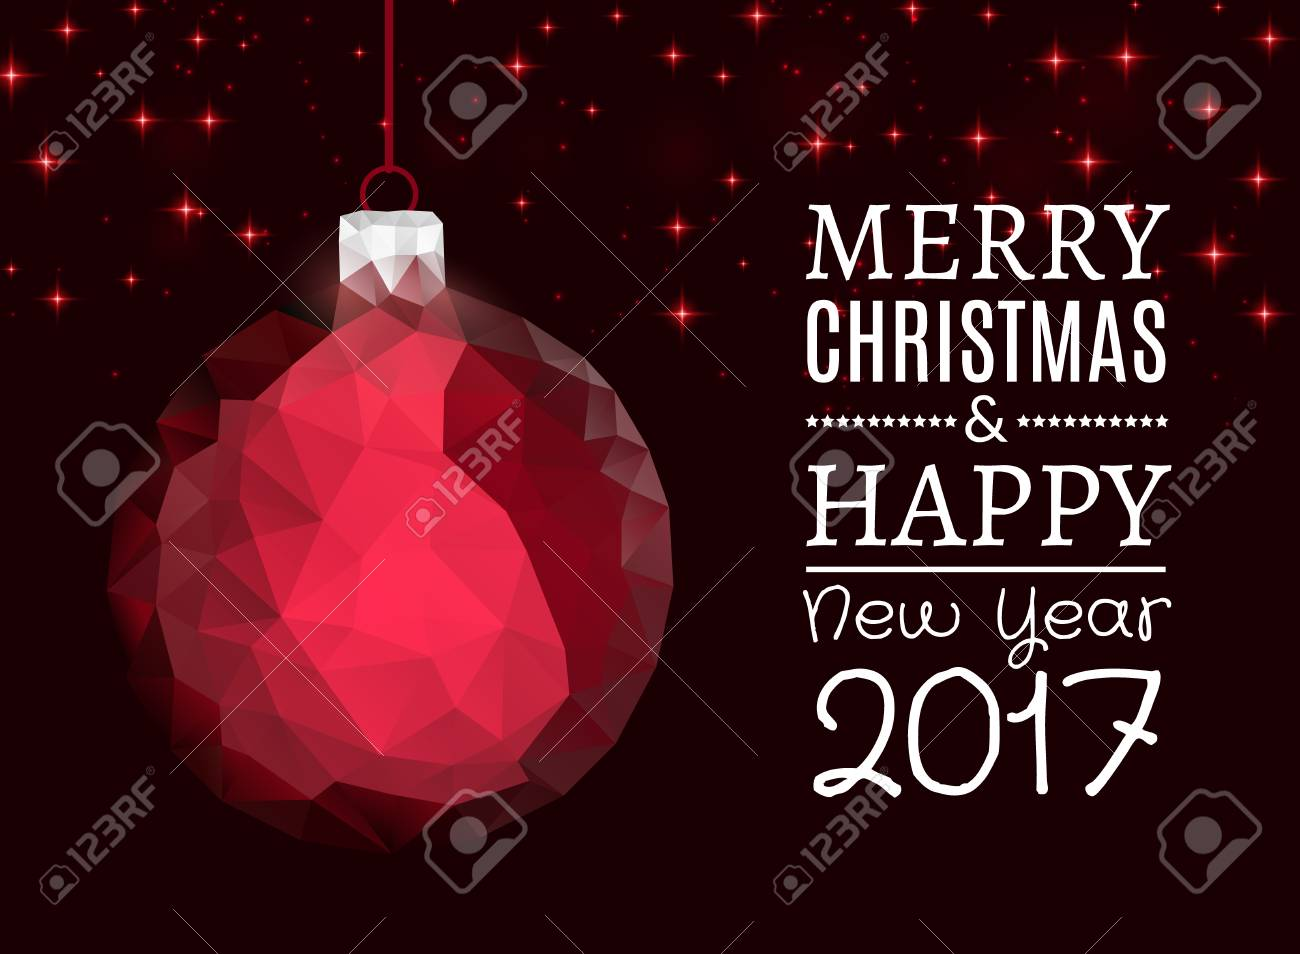 Merry Christmas And Happy New Year Blue Polygonal Ball For Xmas